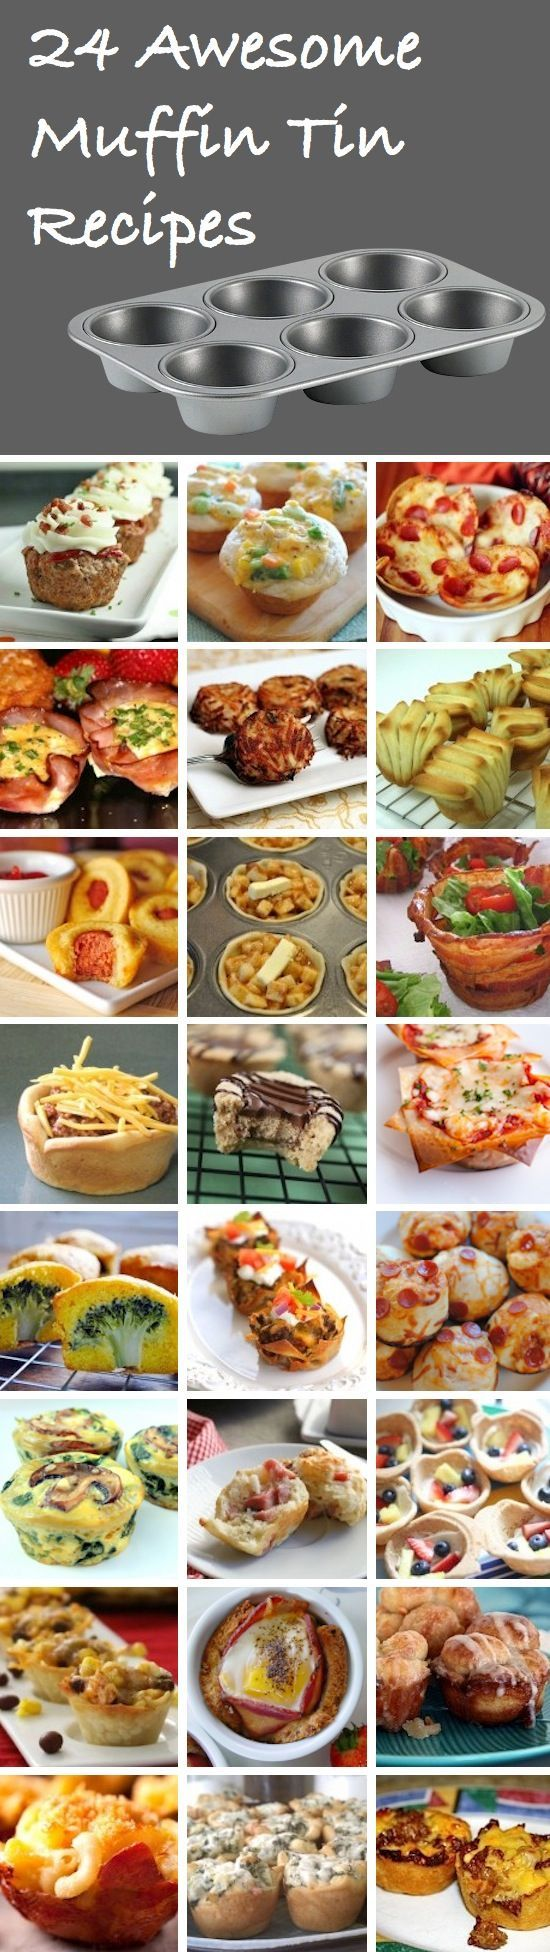 24 Awesome Muffin Tin Recipes. The muffin tin has finally been discovered